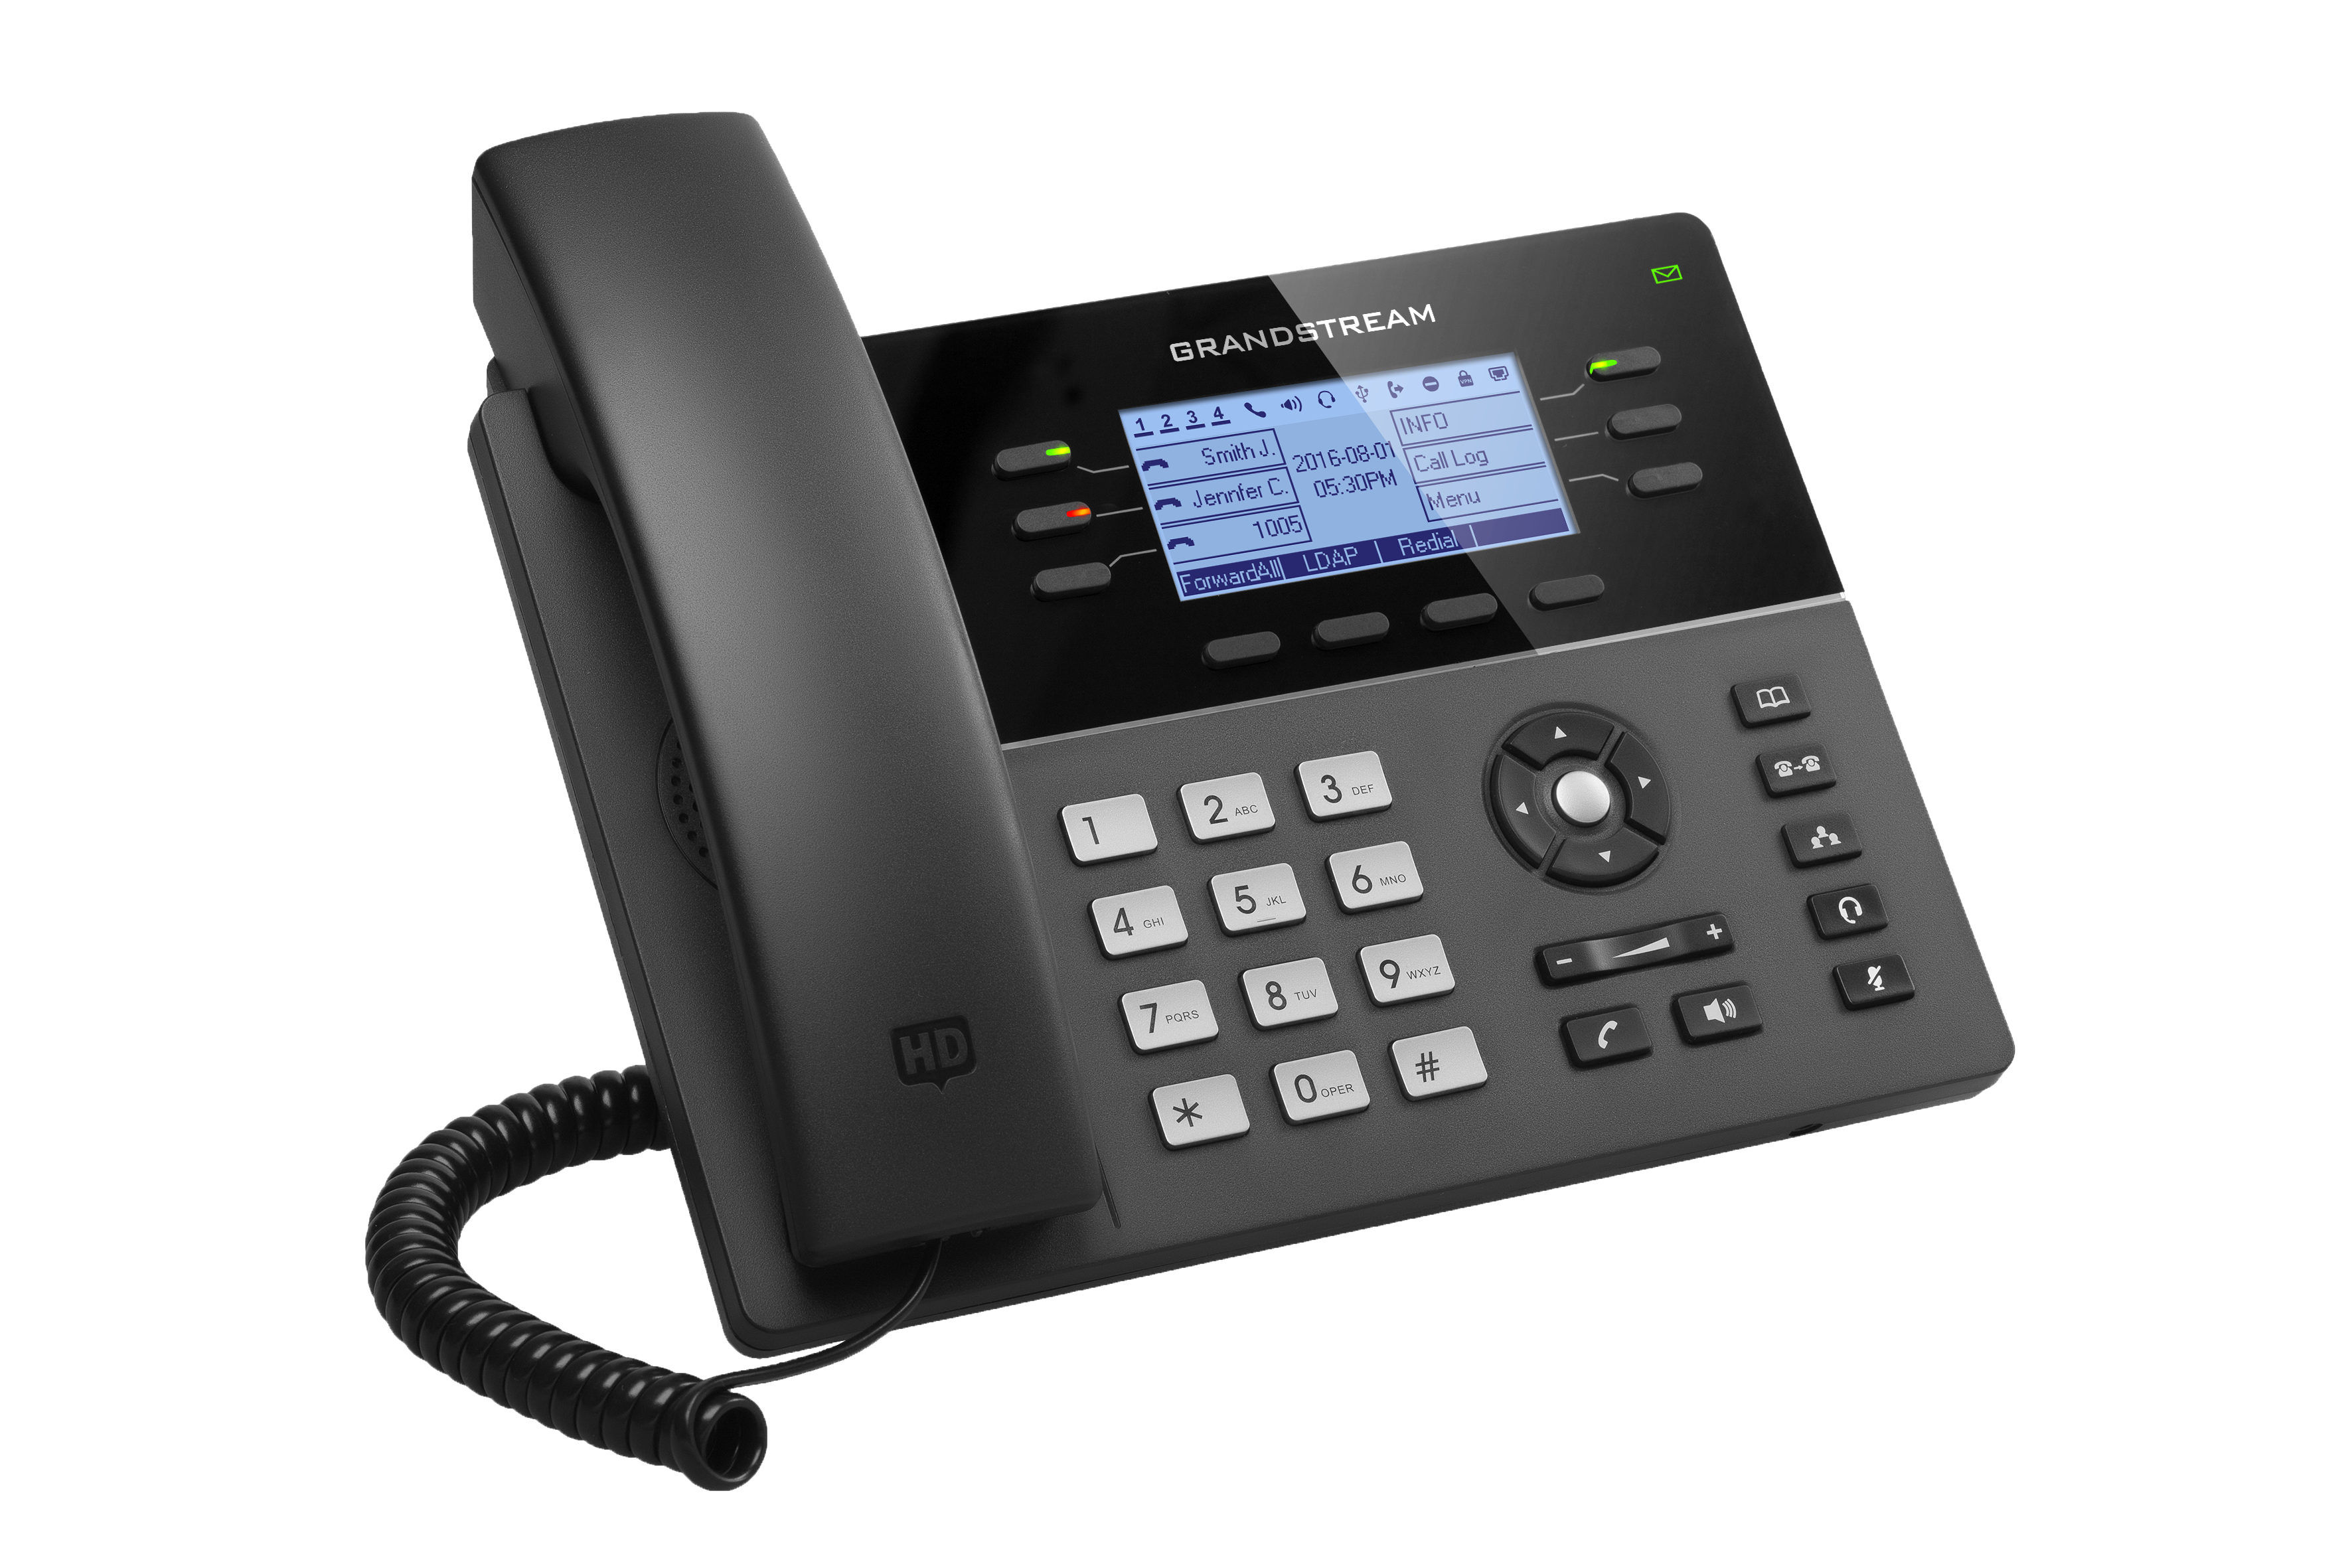 Grandstream GXP1760W IPPhone Front